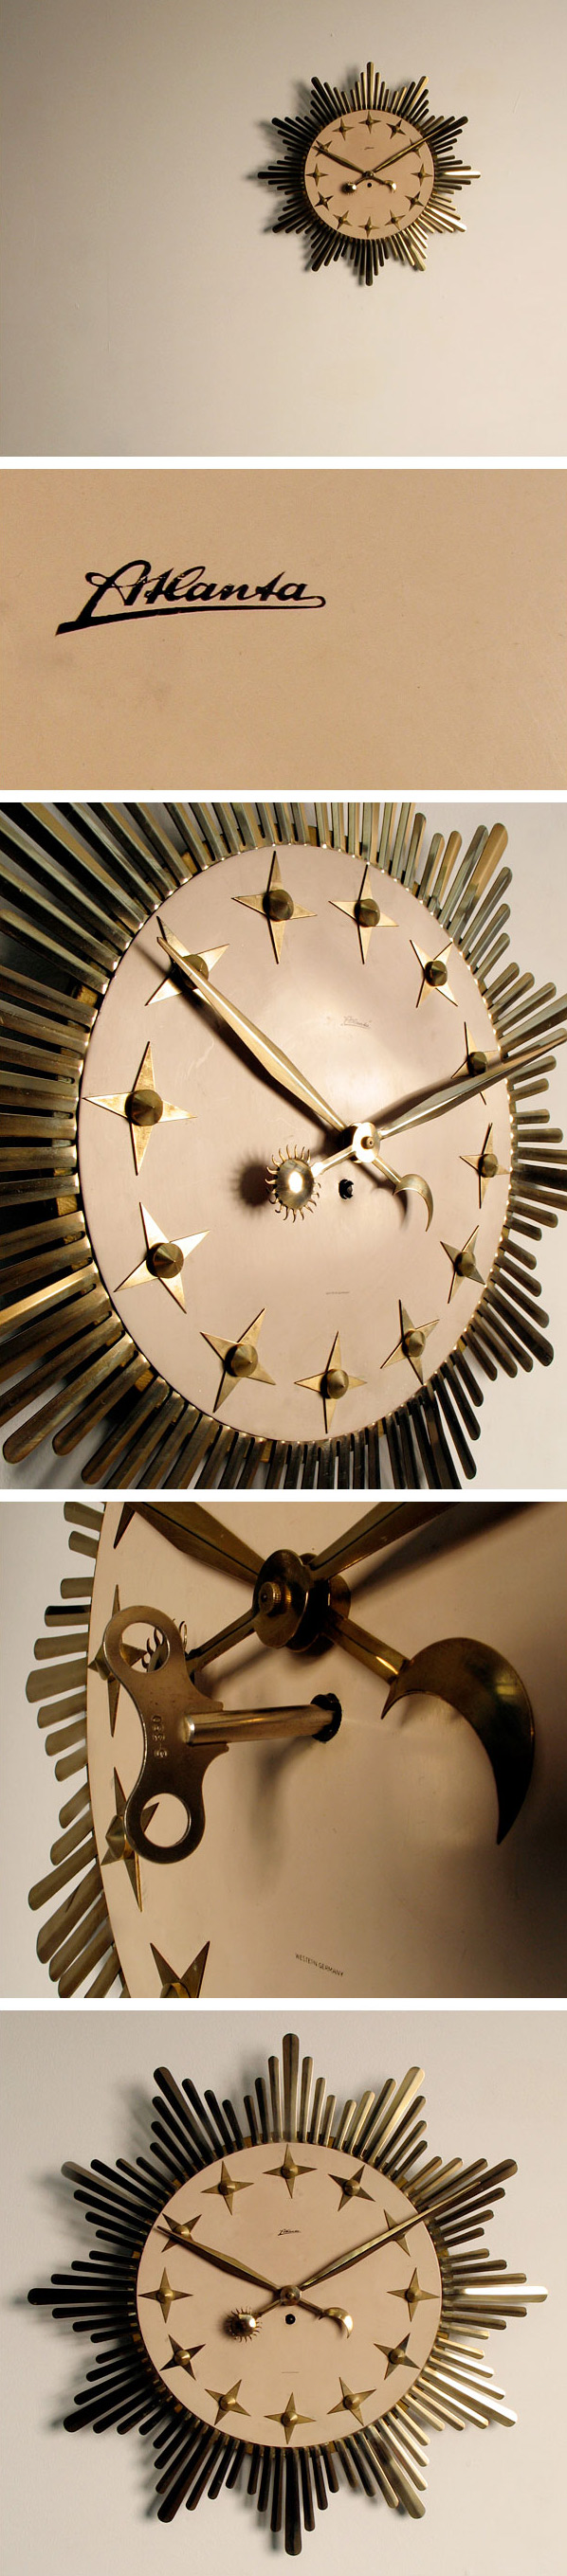 Metal Star Atlanta Sunflower clock 1950 Large